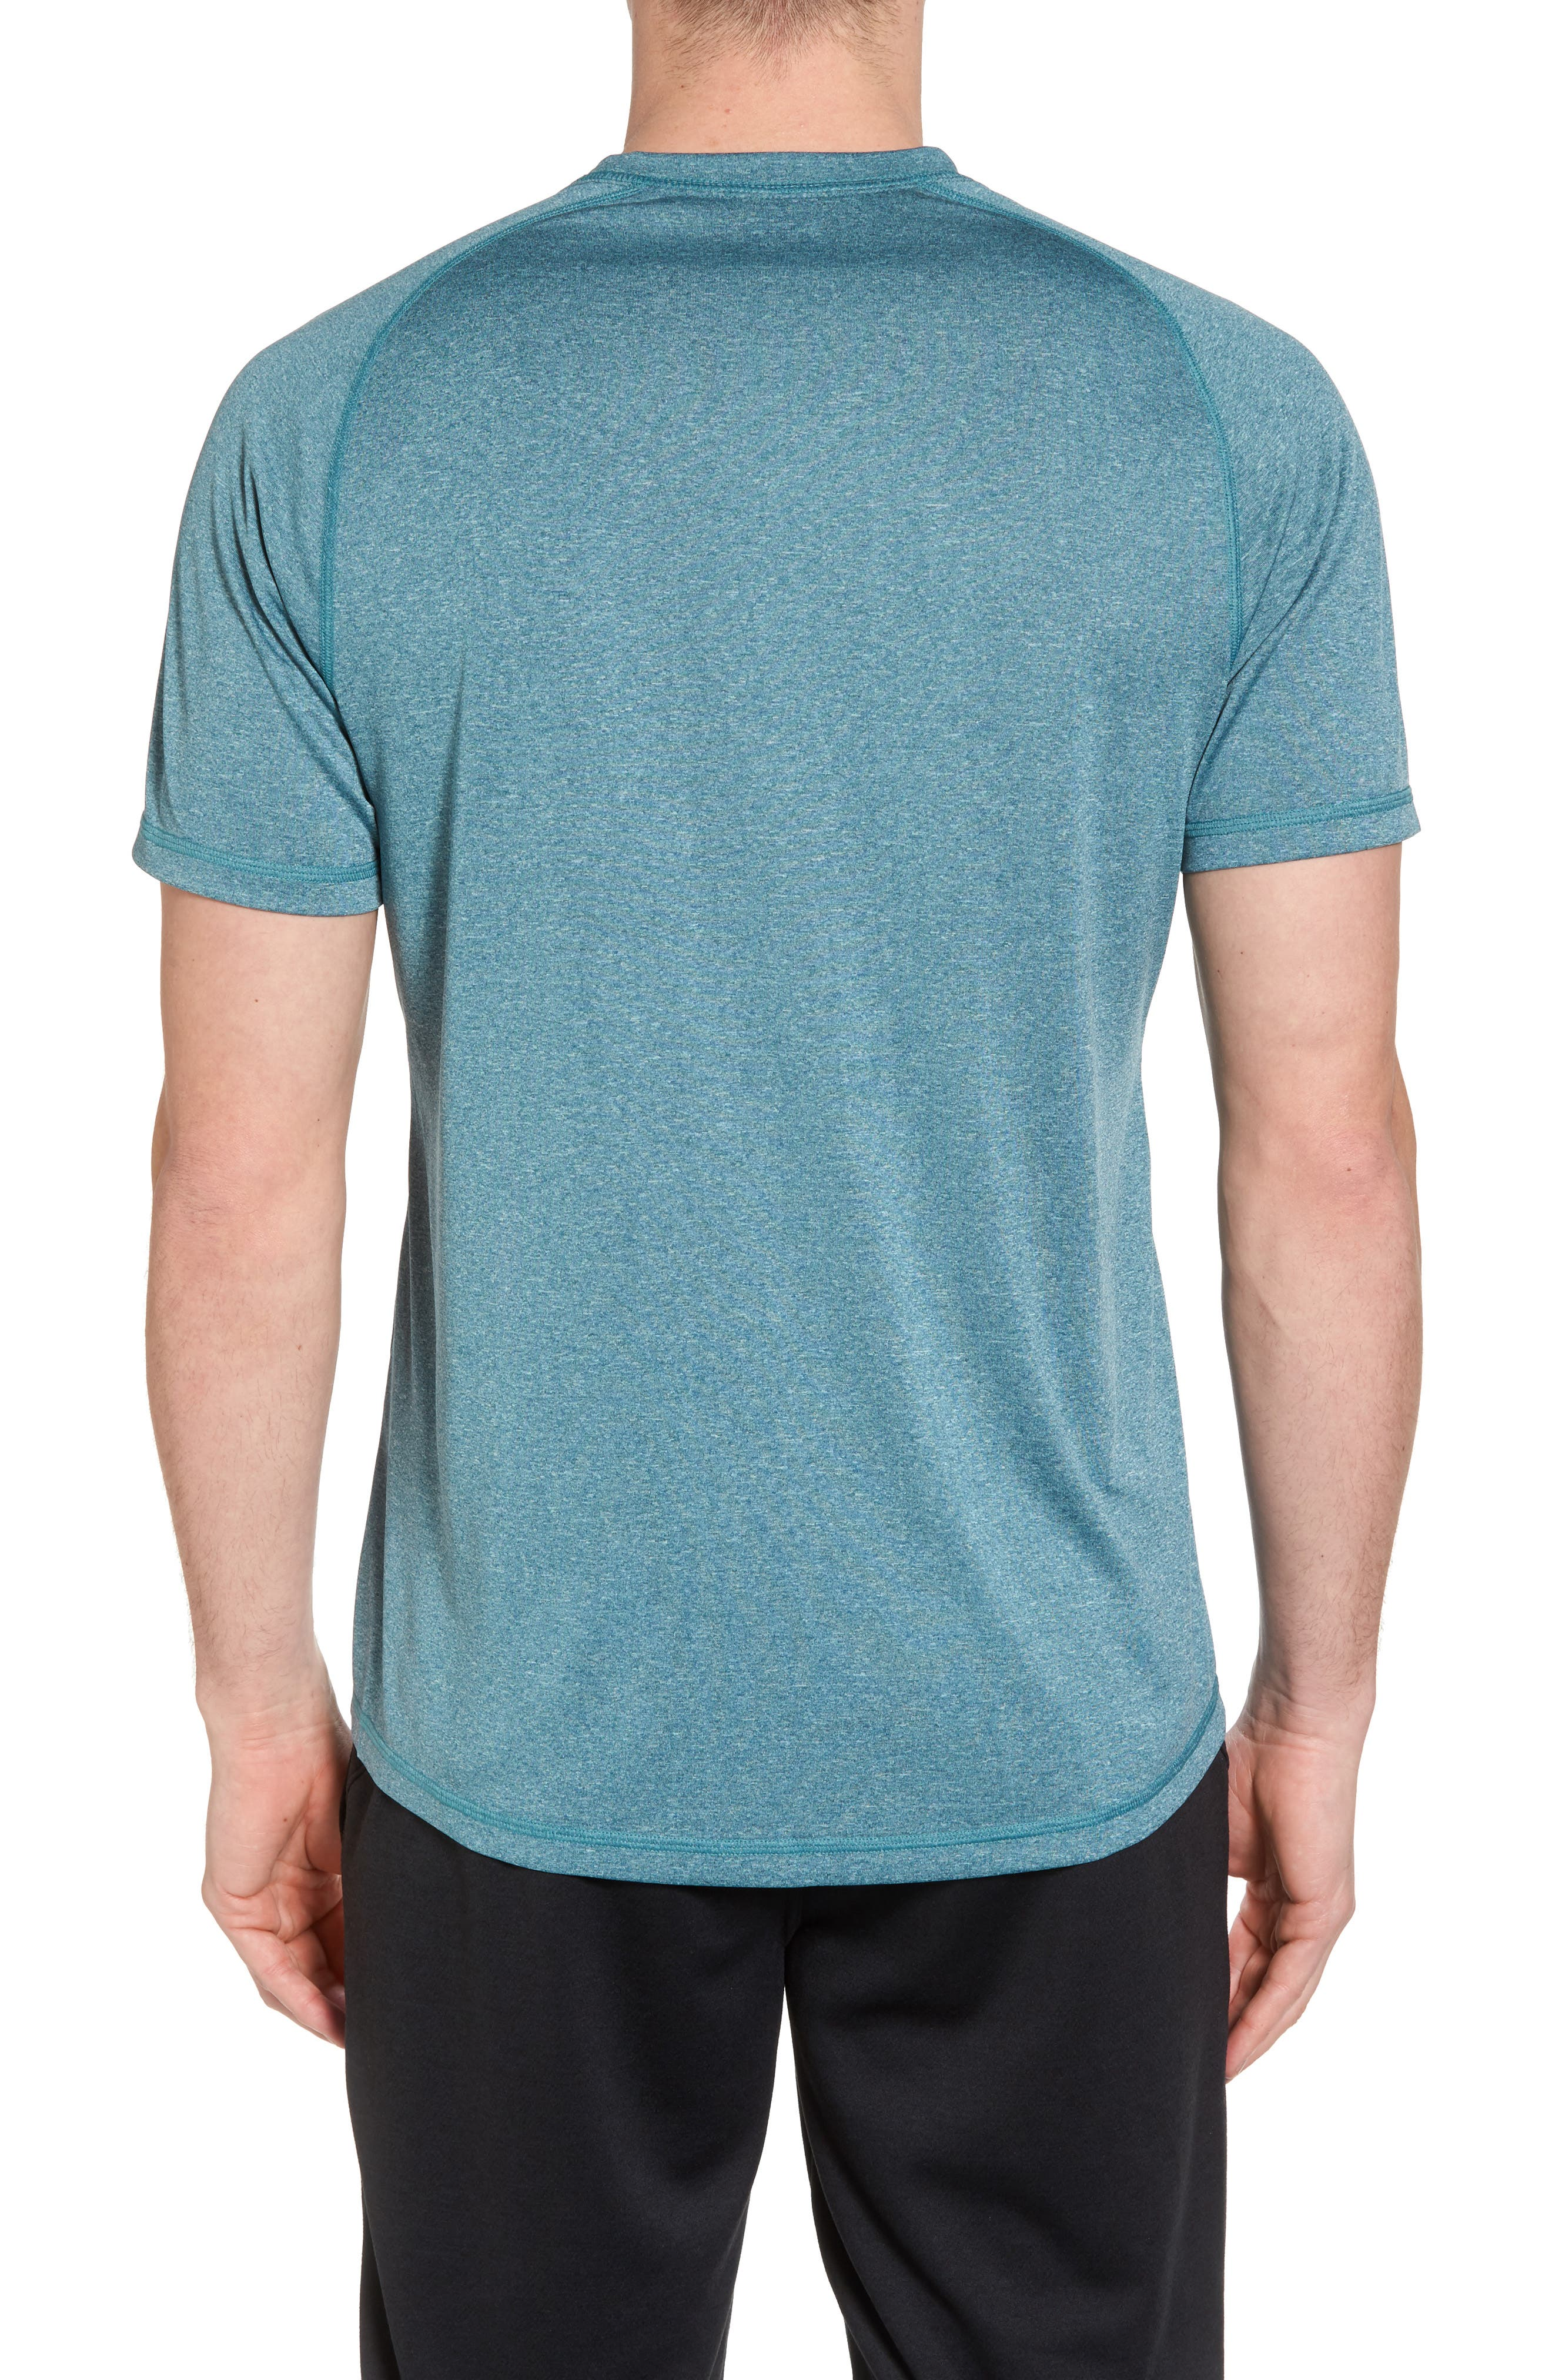 Jordanite Crewneck T-Shirt,                             Alternate thumbnail 2, color,                             Teal Tourmaline Melange